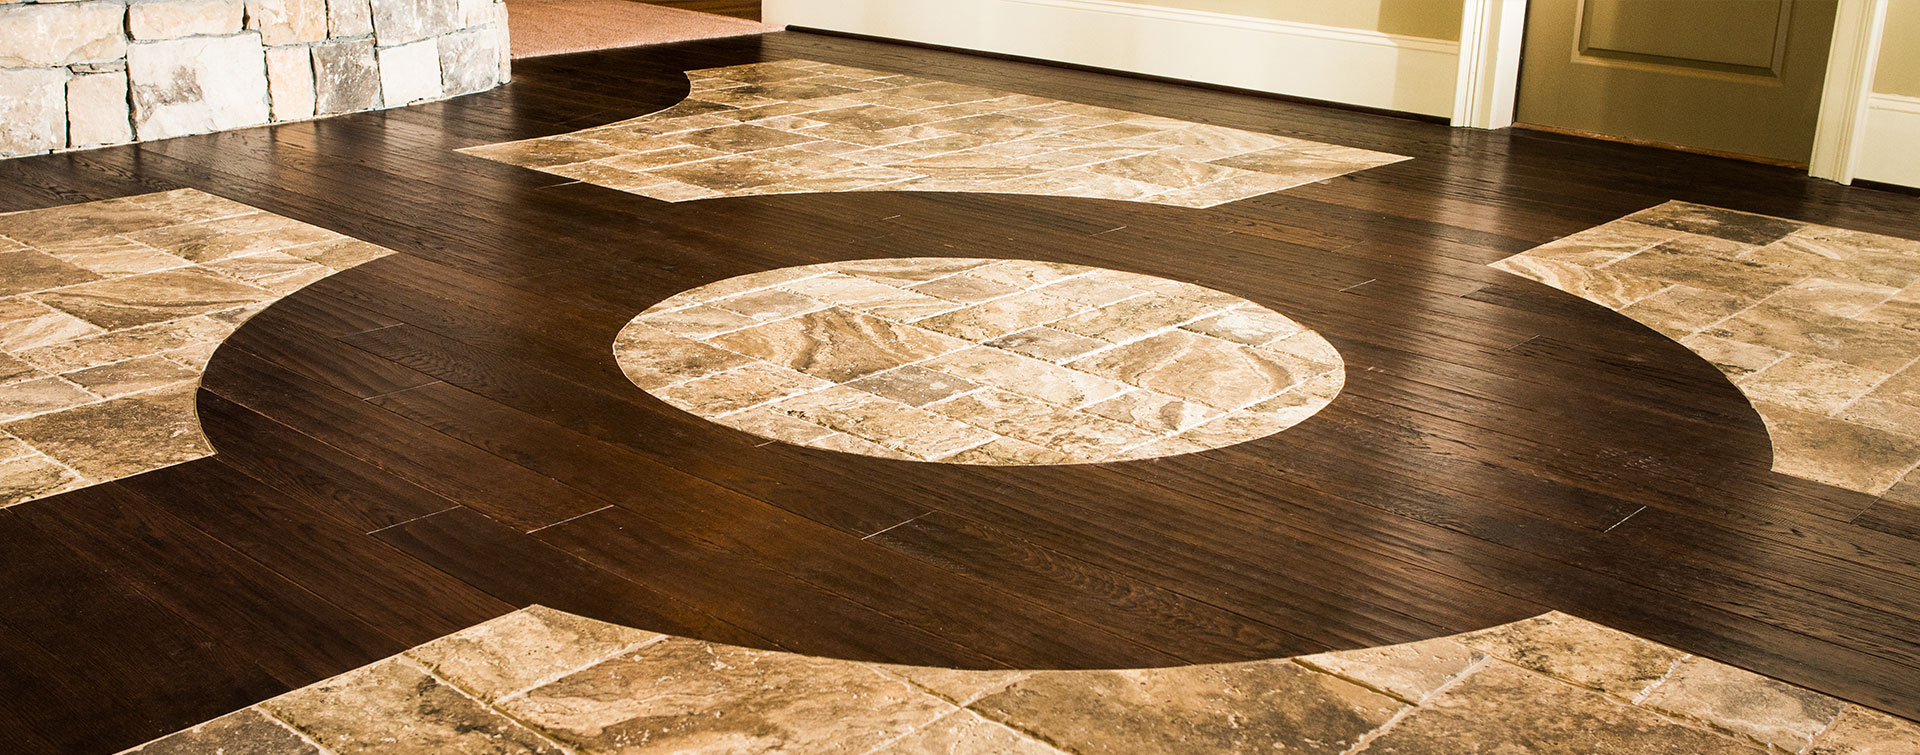 Home Incredible Floors amp Construction Services Suwanee